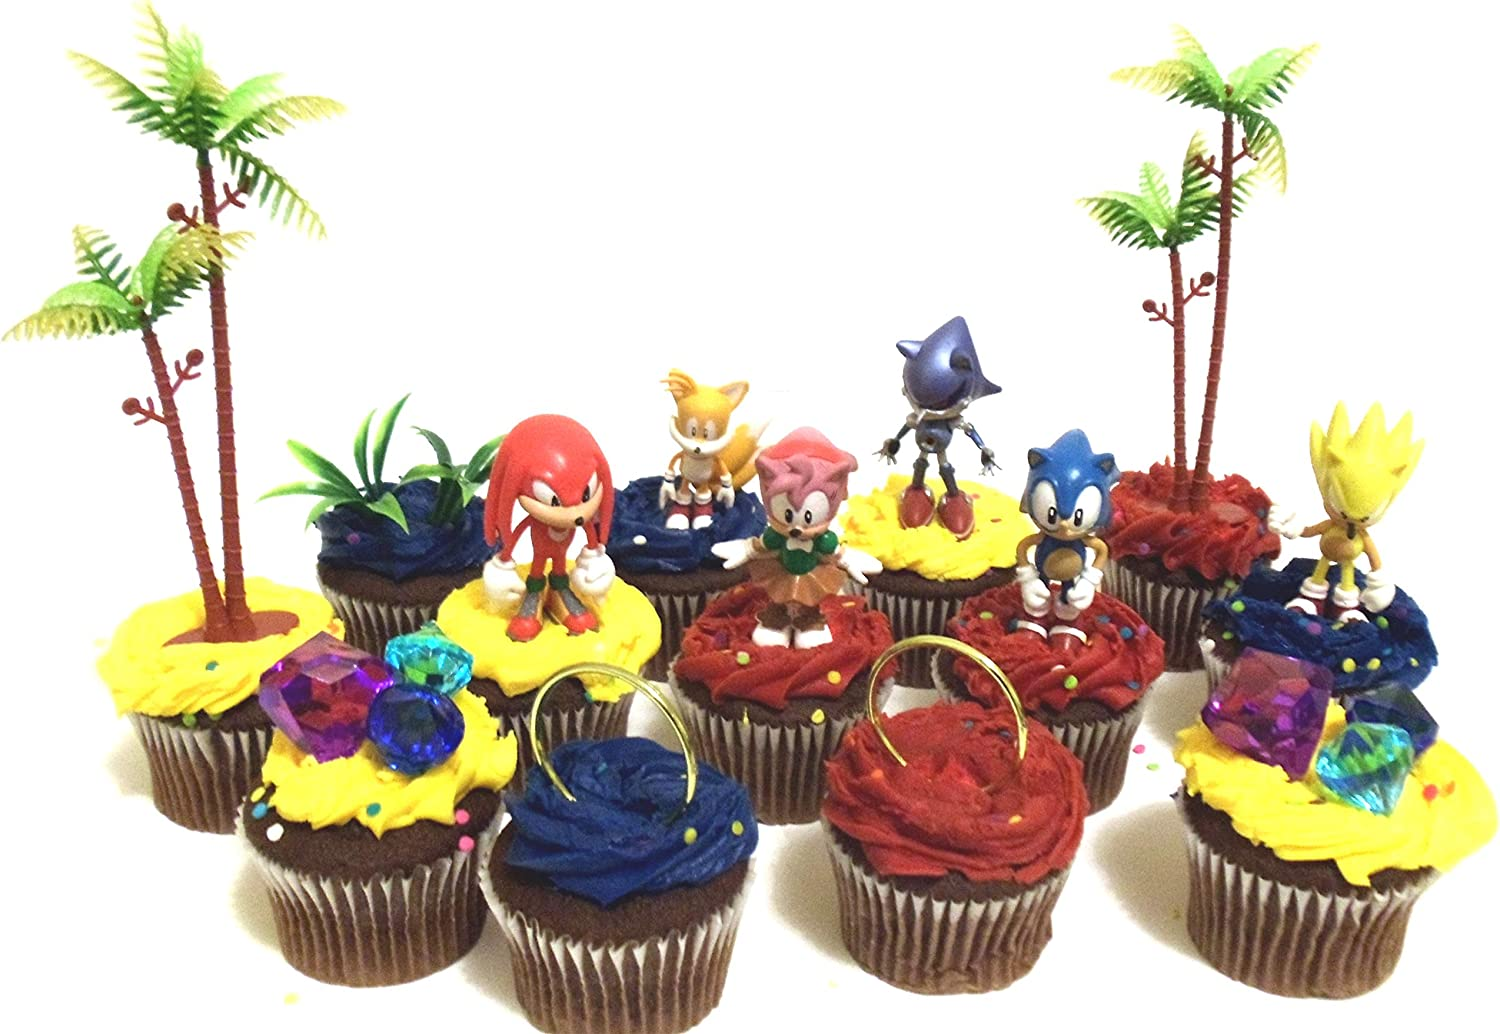 Amazon Com Classic Sonic The Hedgehog Birthday Cupcake Topper Set Featuring Super Sonic Amy Rose Miles Tails Prower Sonic Metal Sonic And Knuckles Themed Decorative Accessories Figures Average 2 5 Tall Kitchen